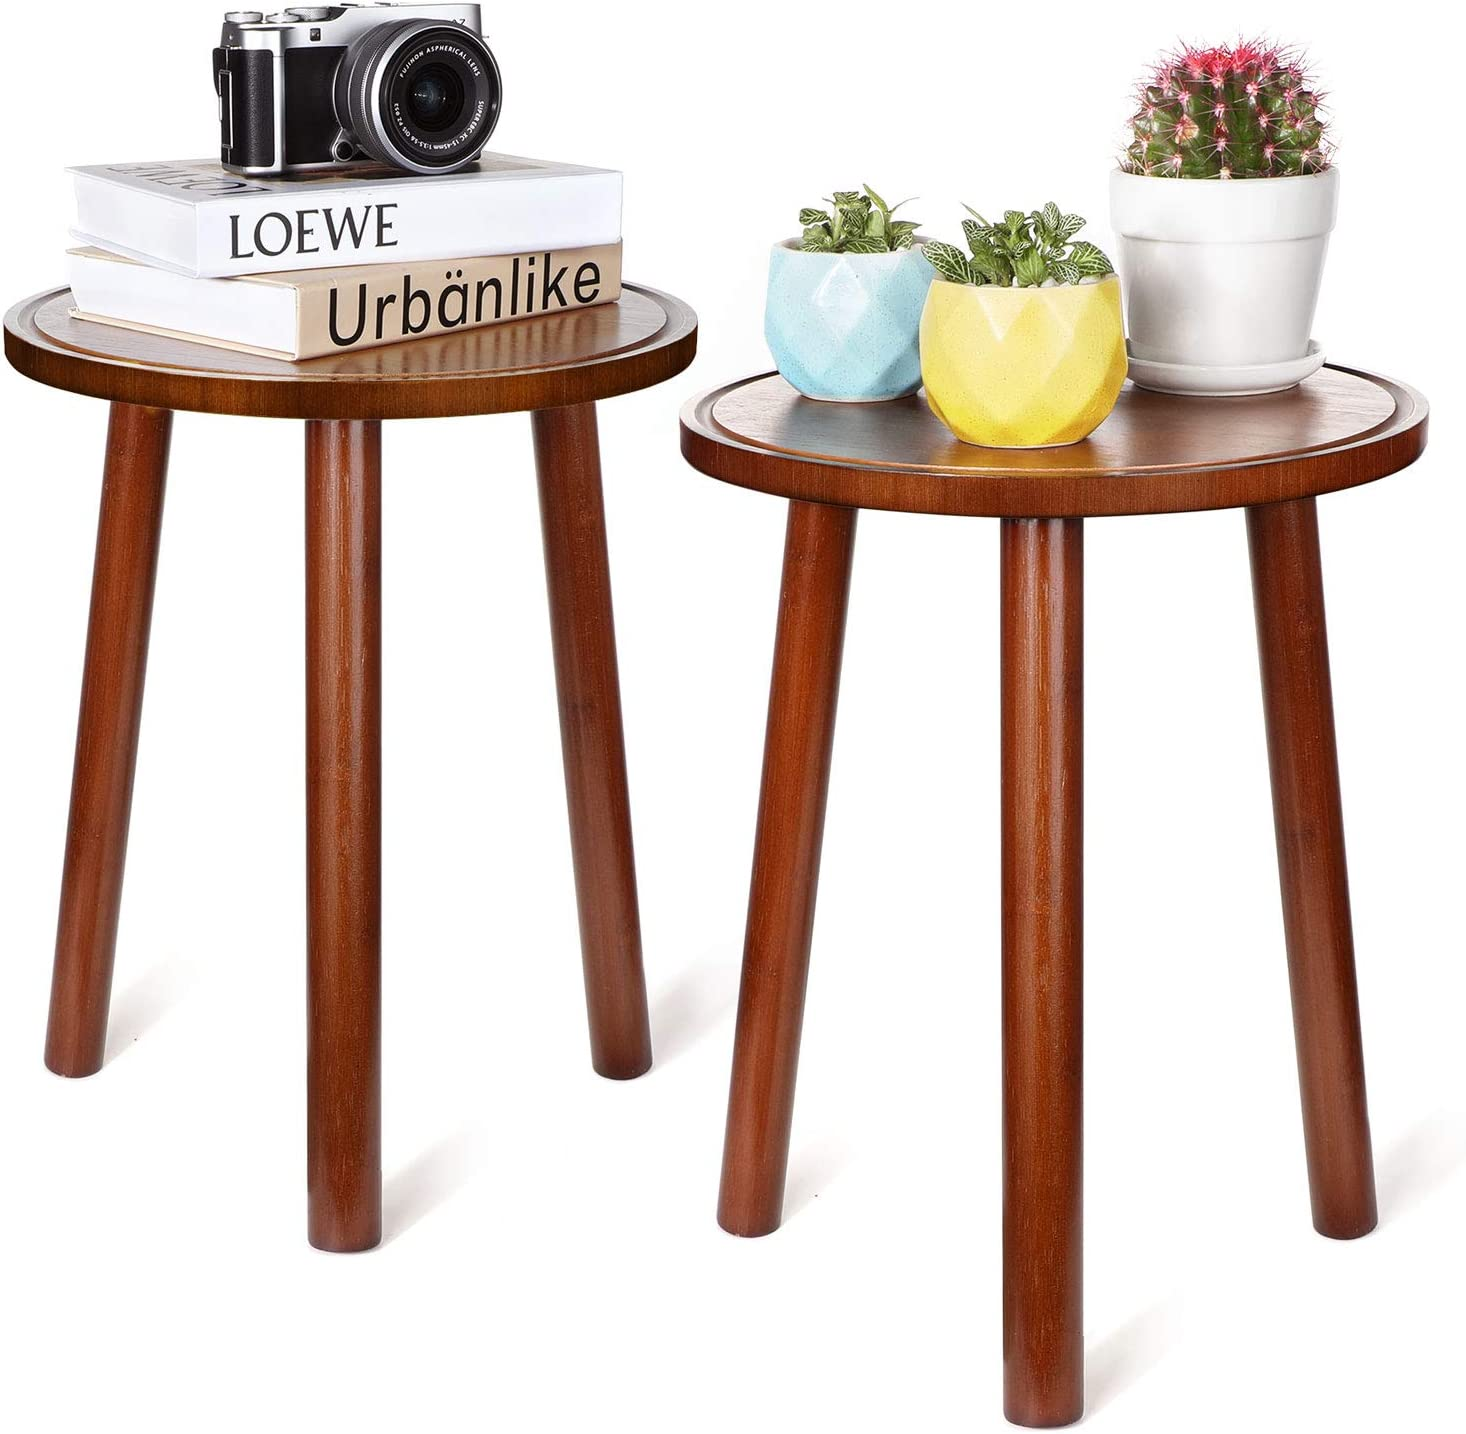 Mudeela Plant Stands for Indoor Plants, 2 Pack Bamboo Plant Stands, 16.5